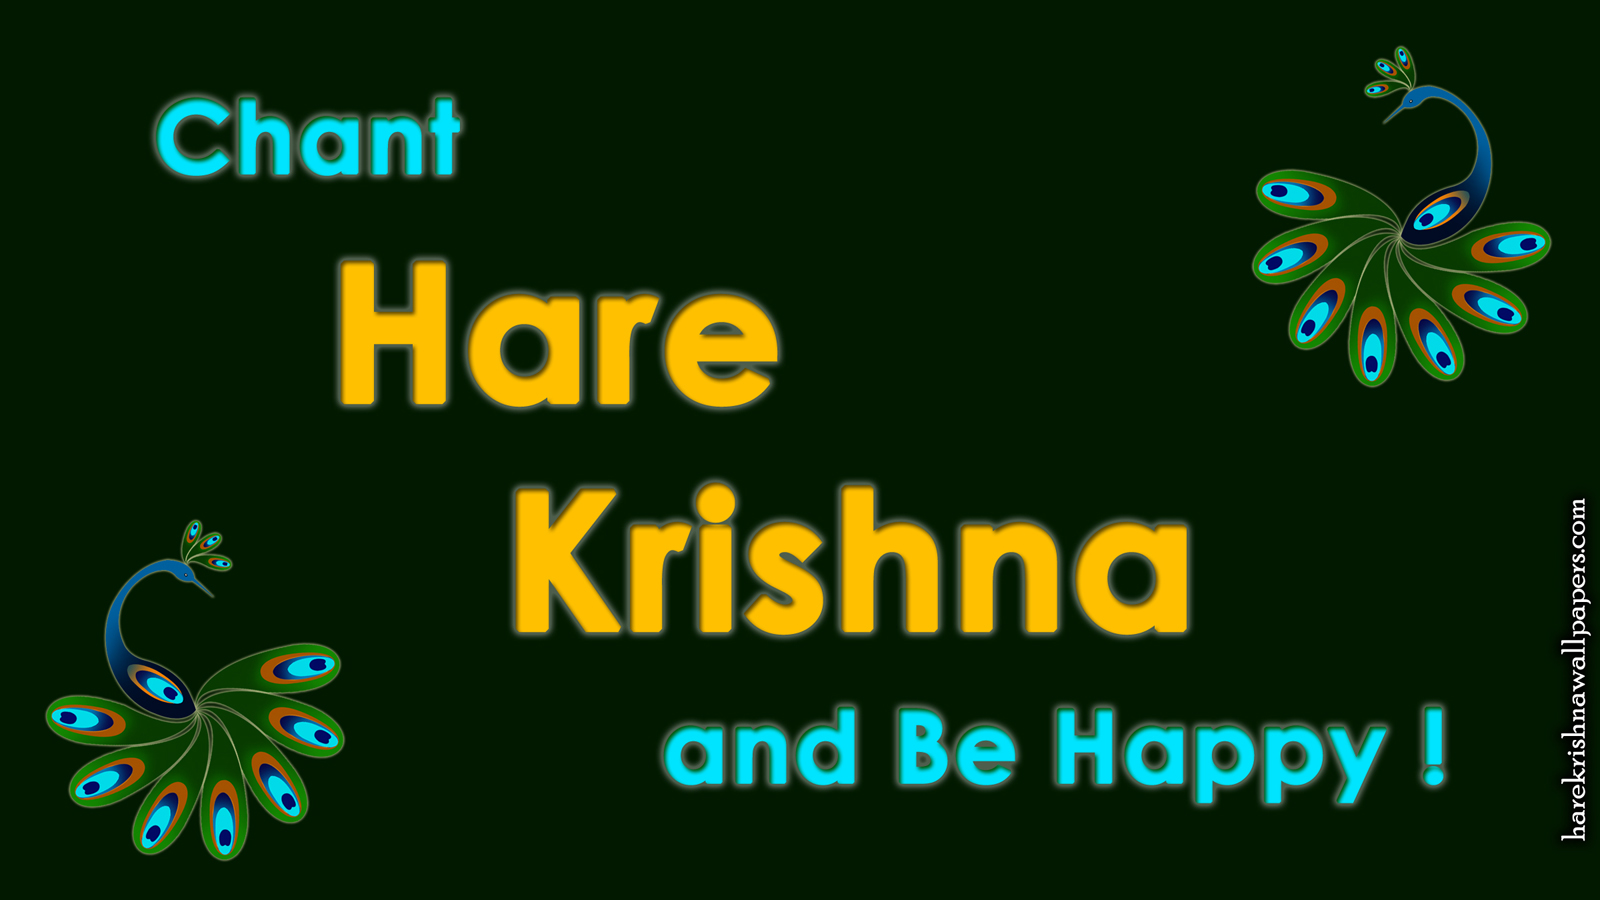 Chant Hare Krishna and be happy Wallpaper (006) Size 1600x900 Download